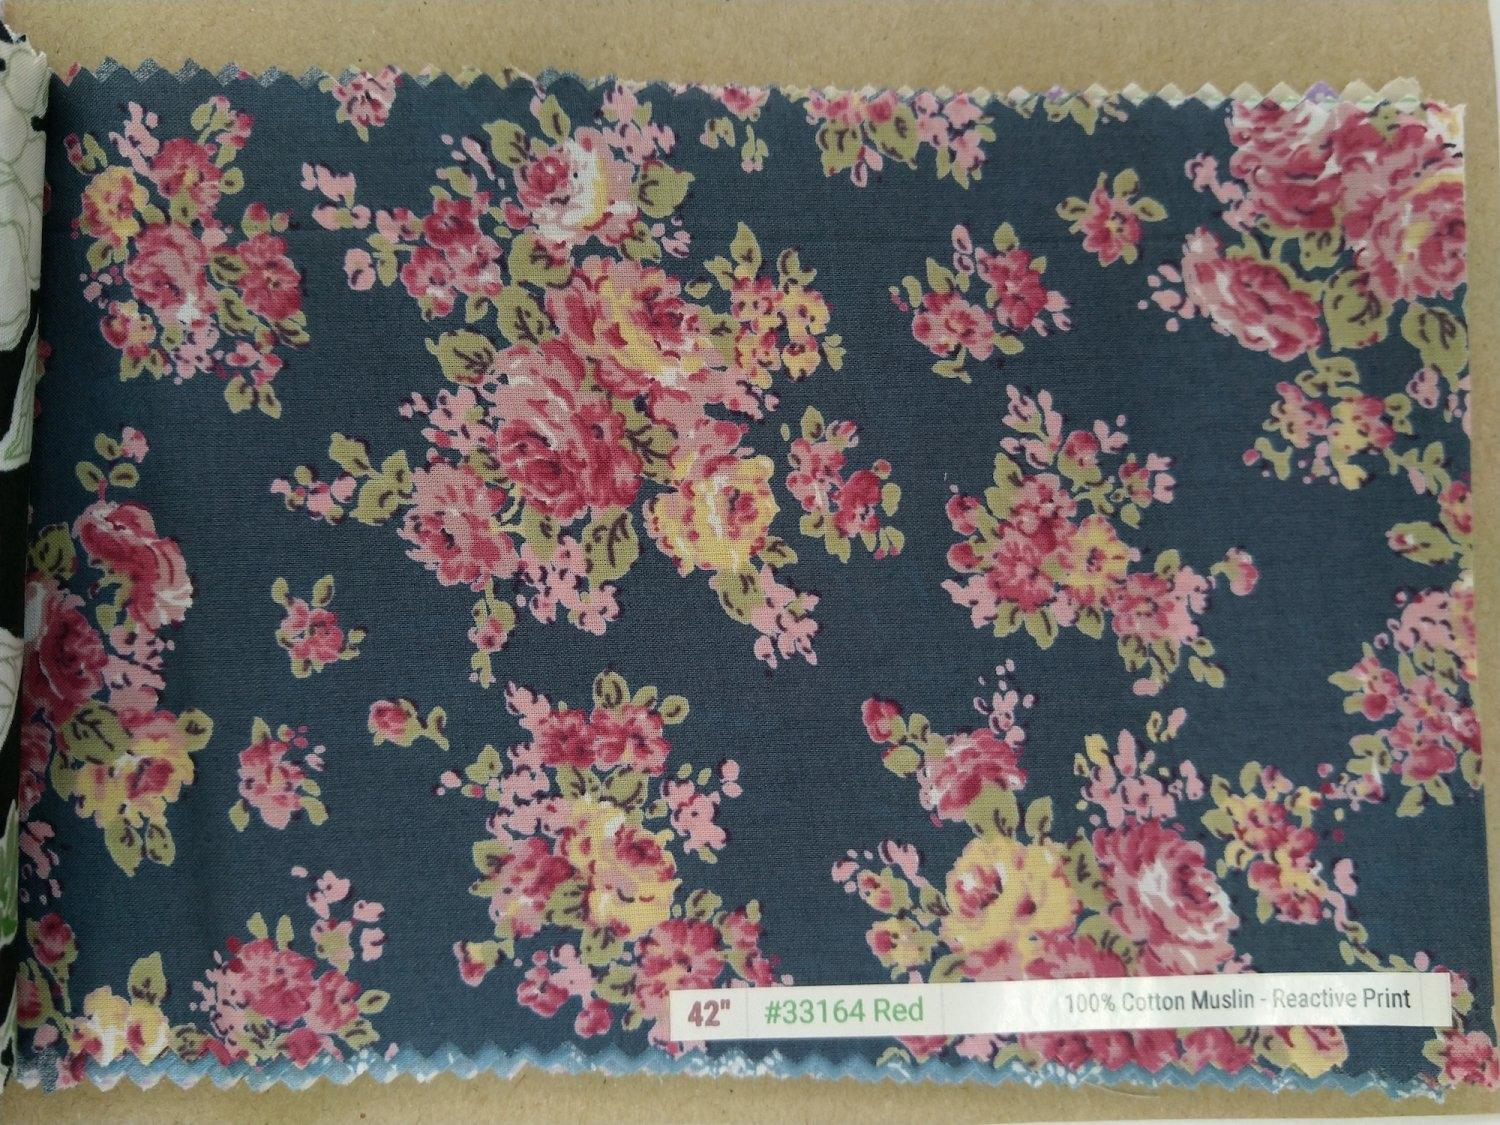 "6098 Cotton Muslin 42"" - Flower Print #33164"